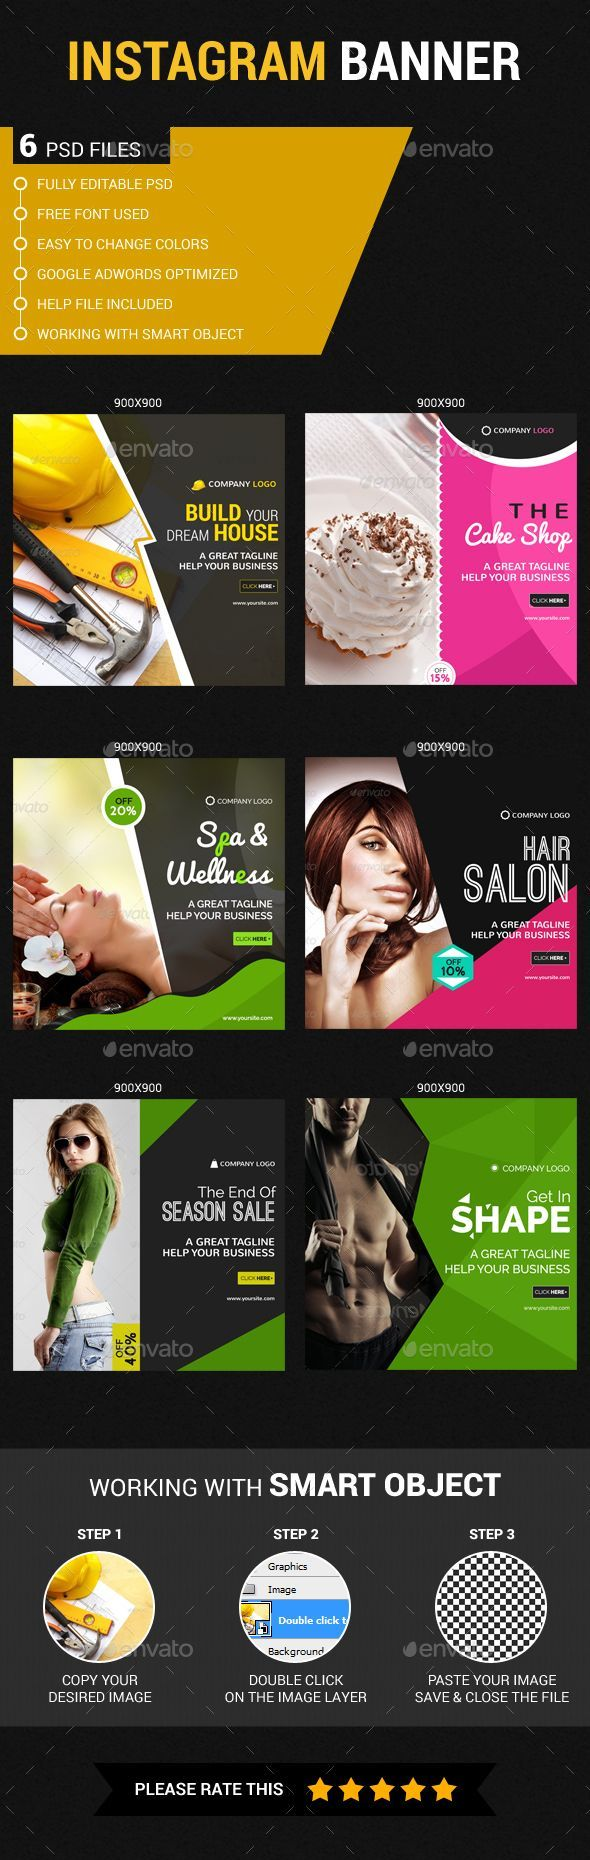 Multipurpose Instagram Banners Template #design #ads Download: http://graphicriver.net/item/multipurpose-instagram-templates/13033890?ref=ksioks